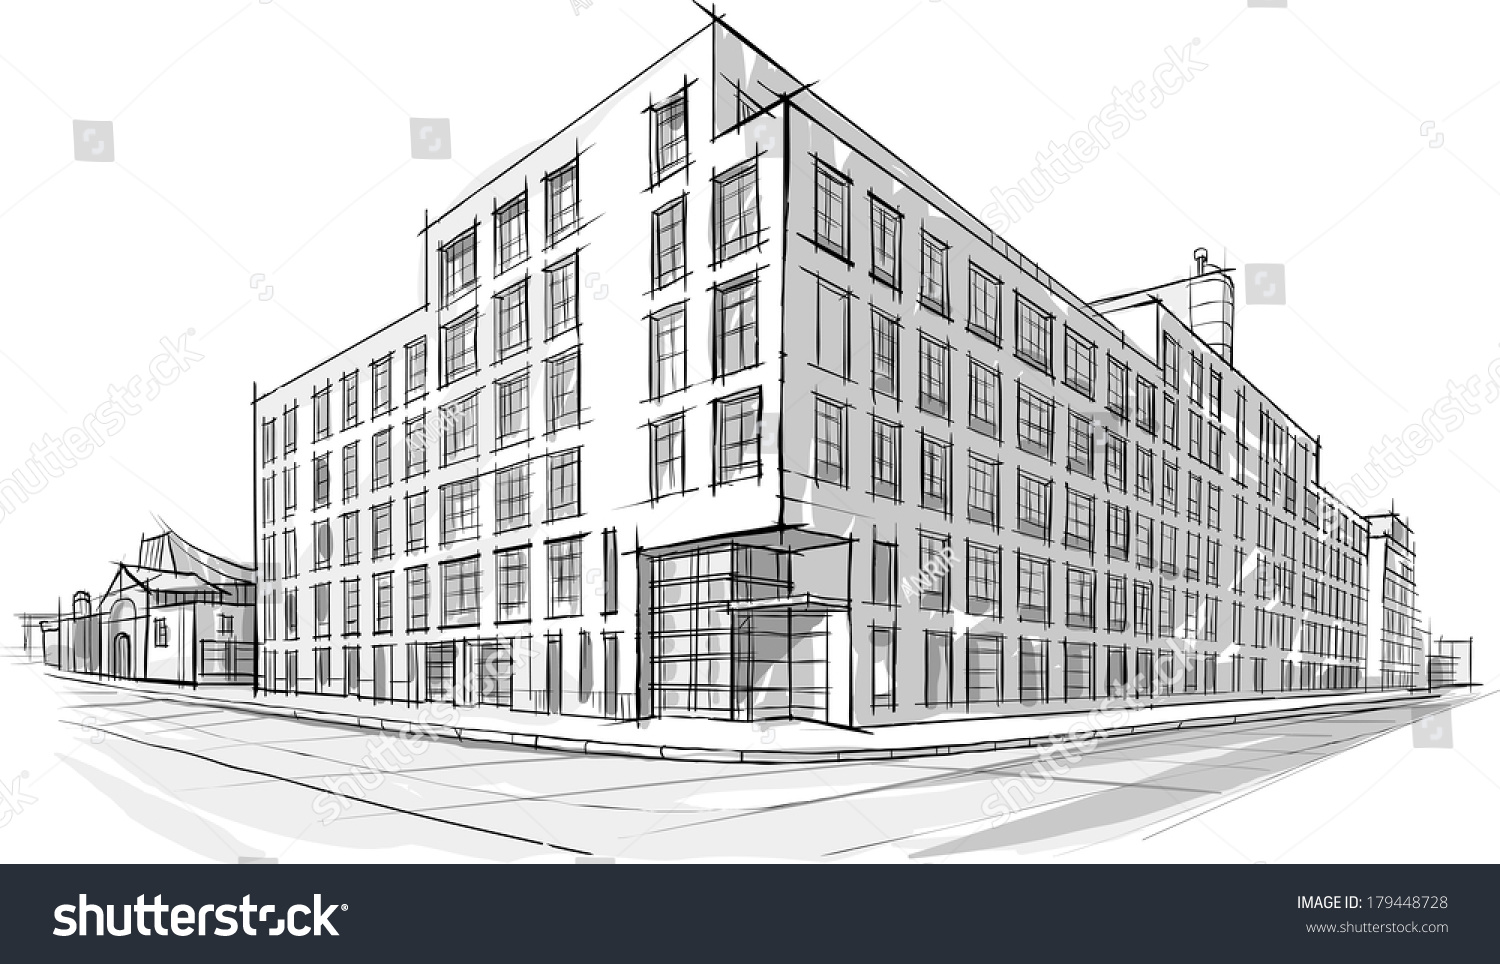 Architecture Sketch Drawing Buildingcity Stock Vector